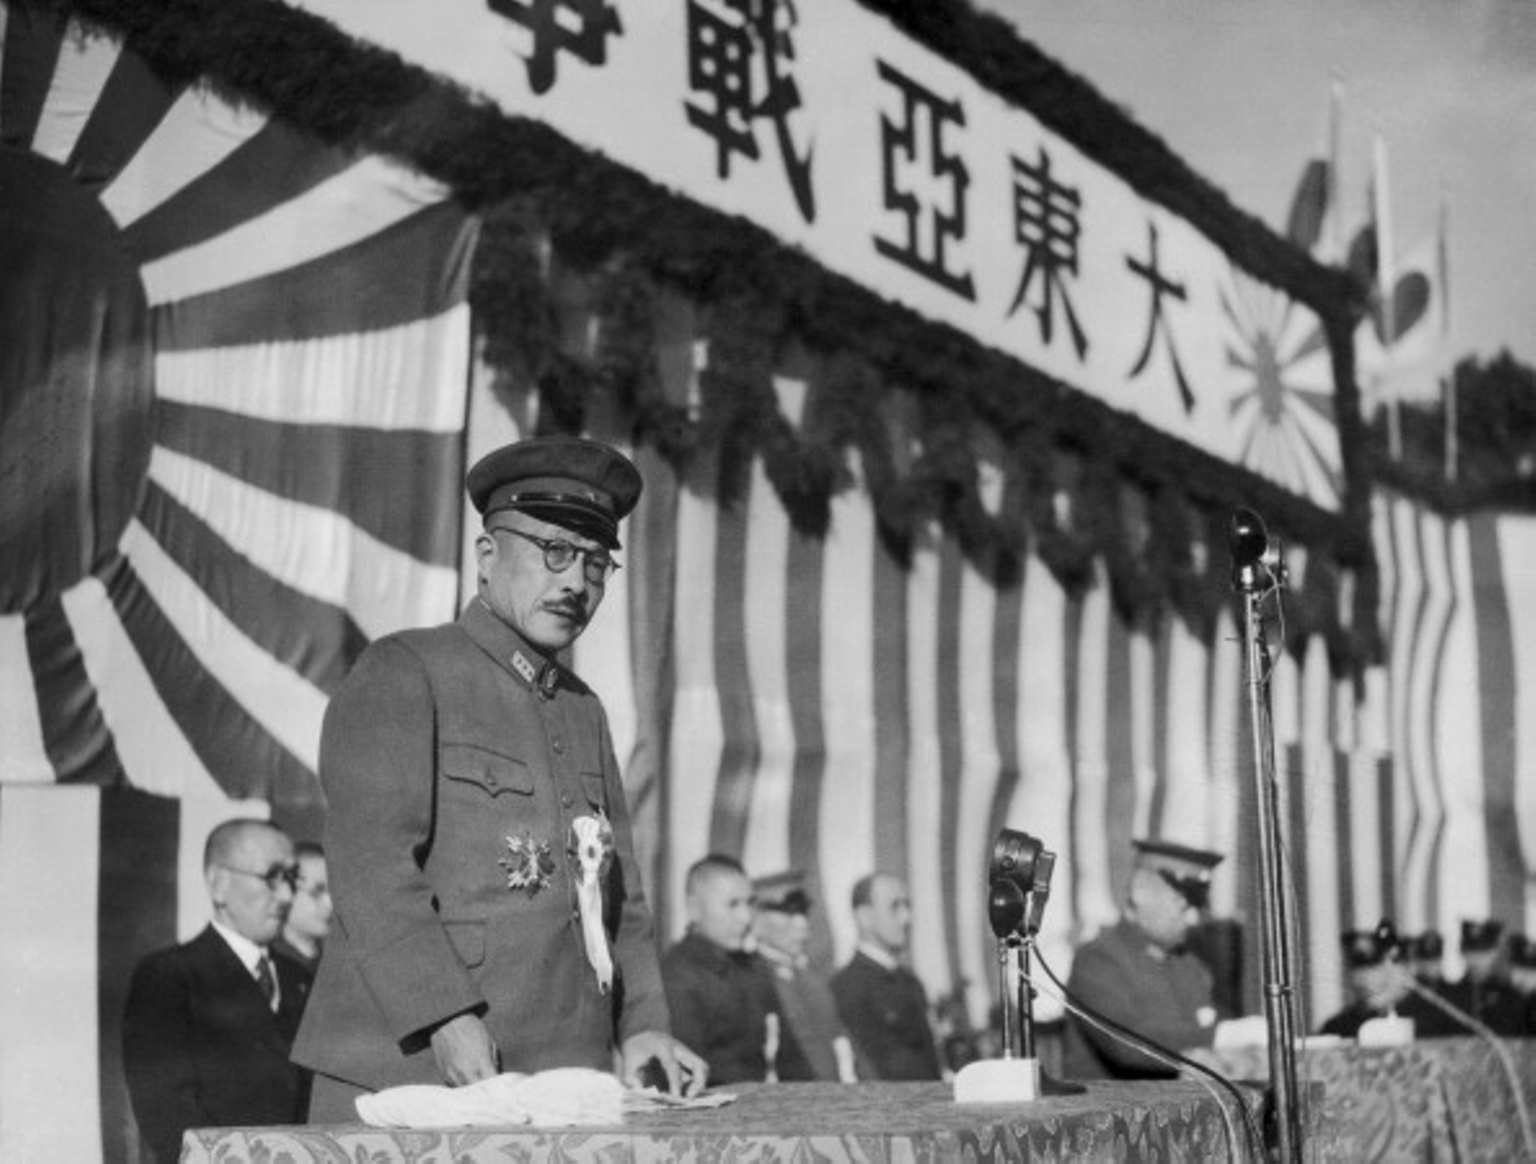 How did Hideki Tojo gain power?